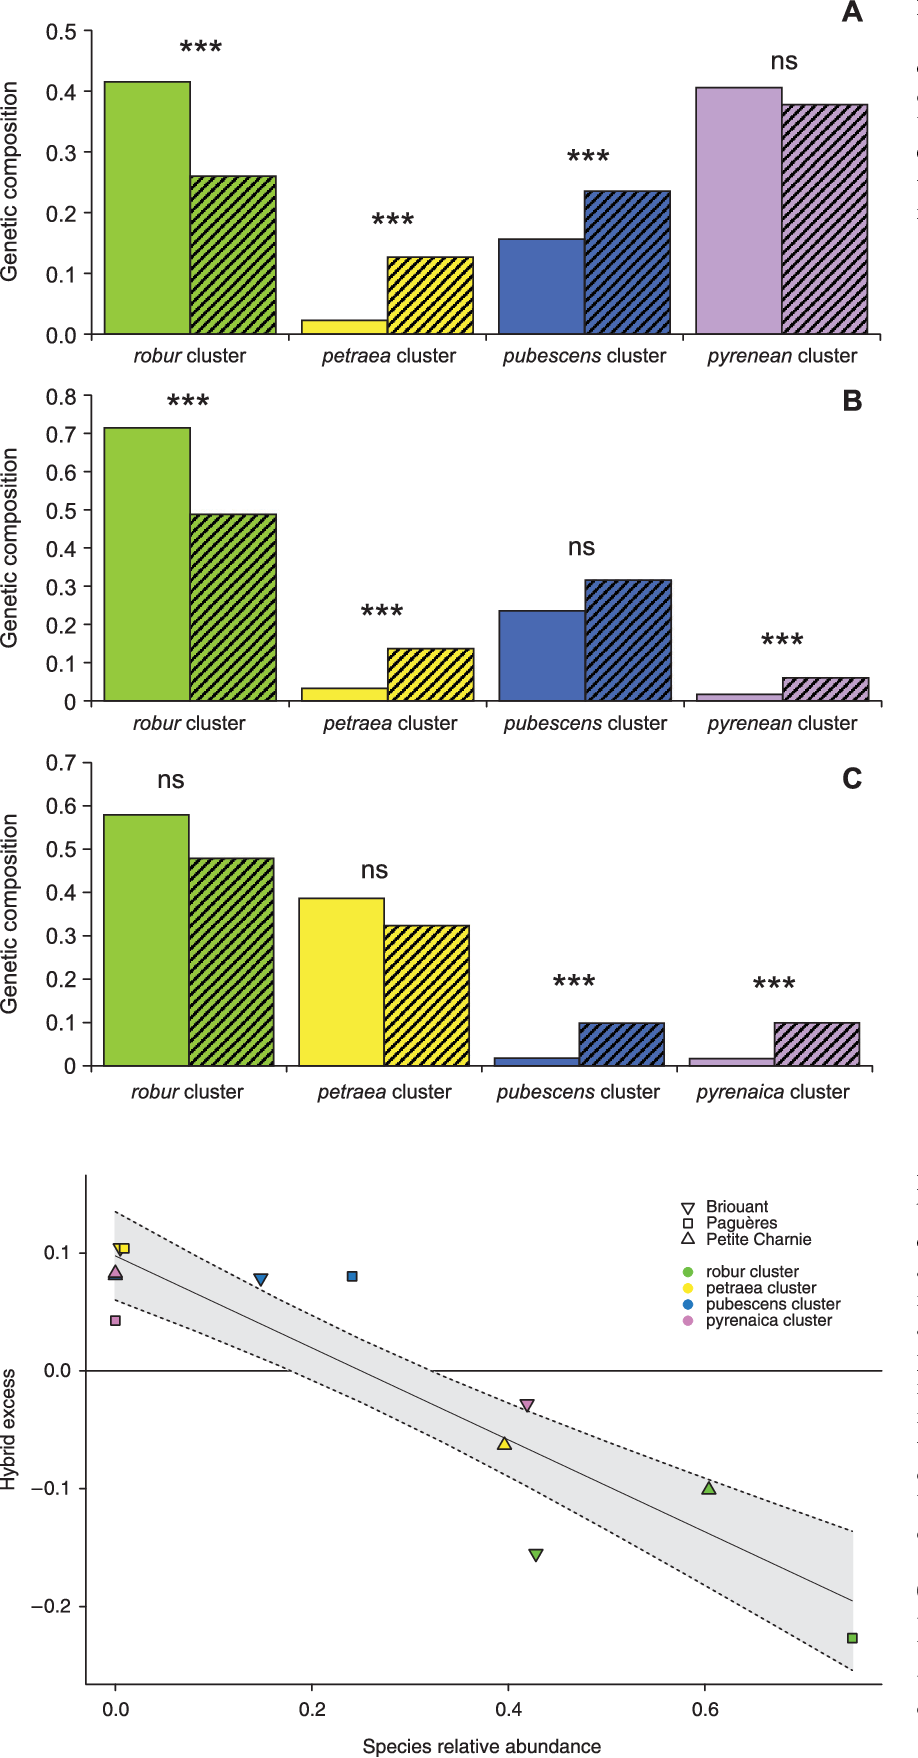 Fig. 5 Comparisons of genetic composition (averaged admixture coefficients from each of the four clusters) for pure species (plain colours) and hybrids (dashed colours) in Briouant (A), Paguères (B) and Petite Charnie (C) stands. Differences were tested with a Student's t-test (***: P < 0.001, NS: not significant).